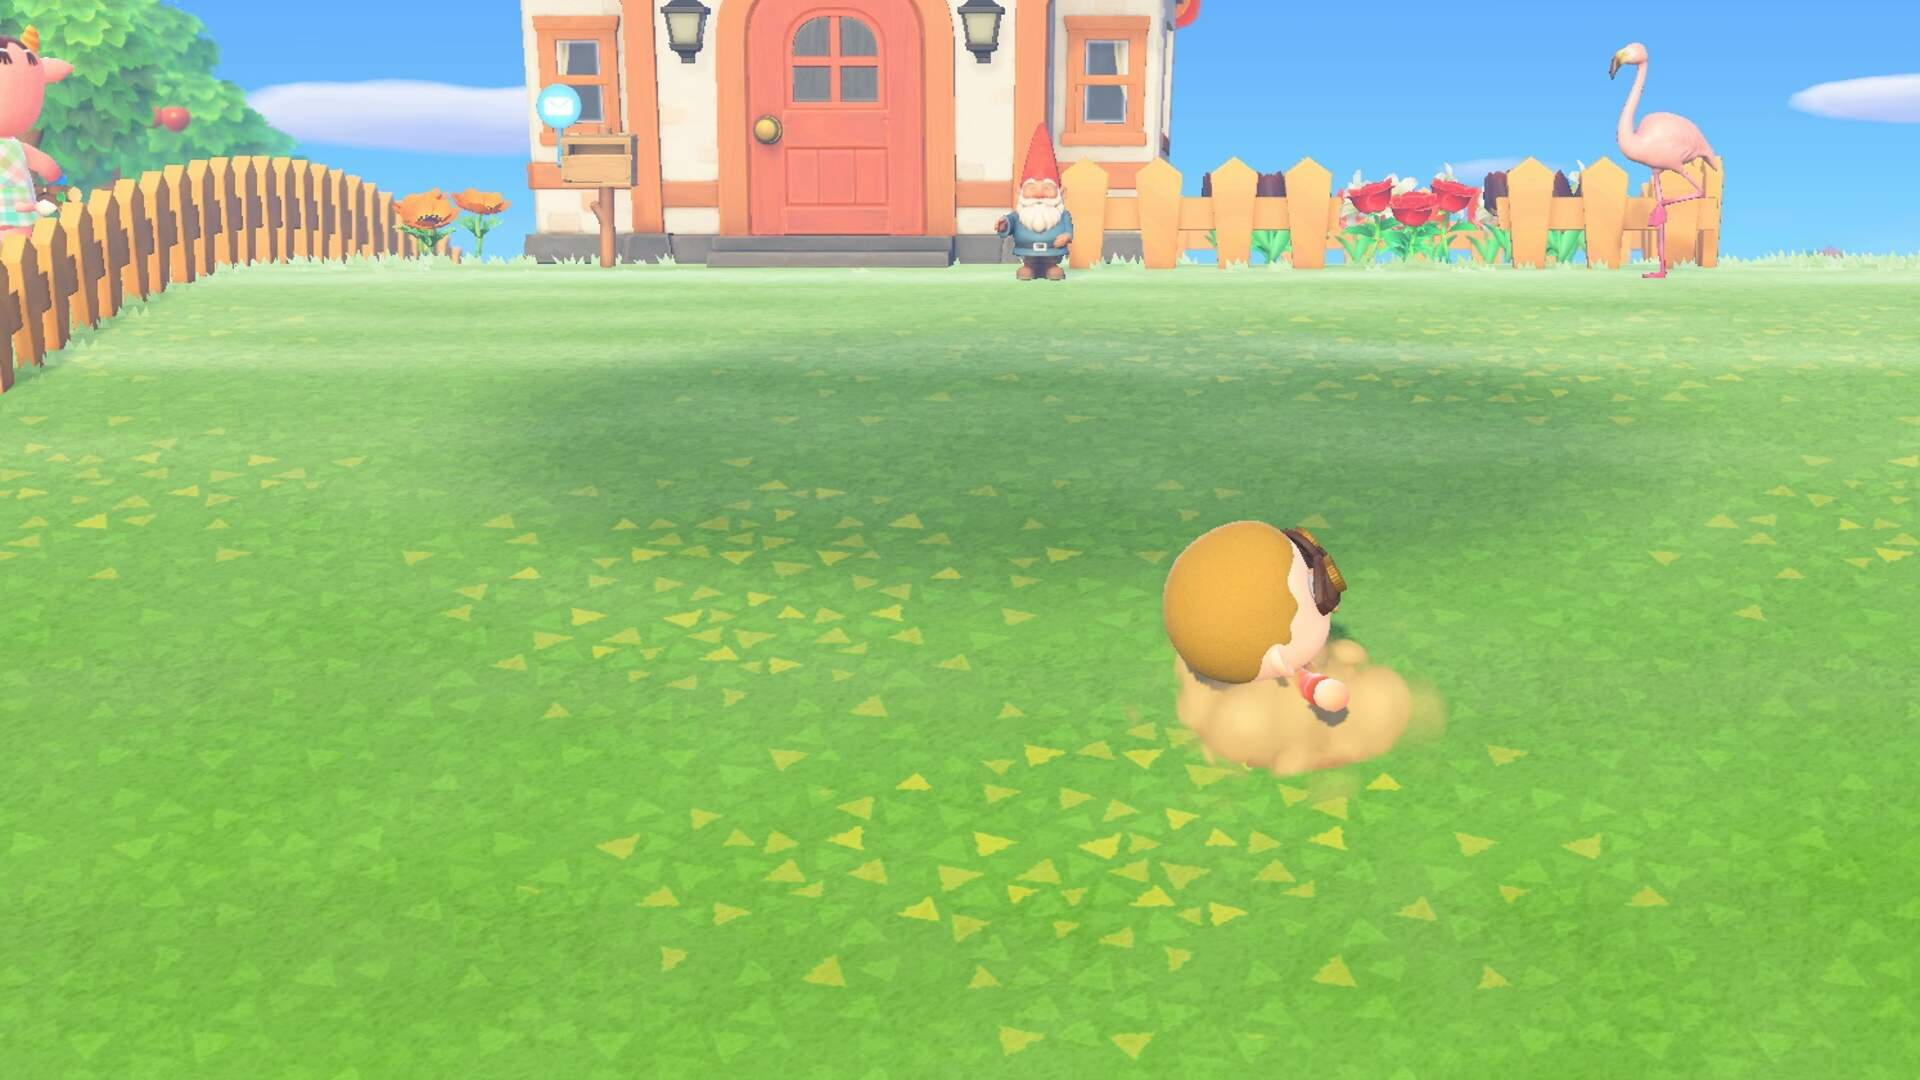 Animal Crossing New Horizons: How to Get Pitfall Seeds